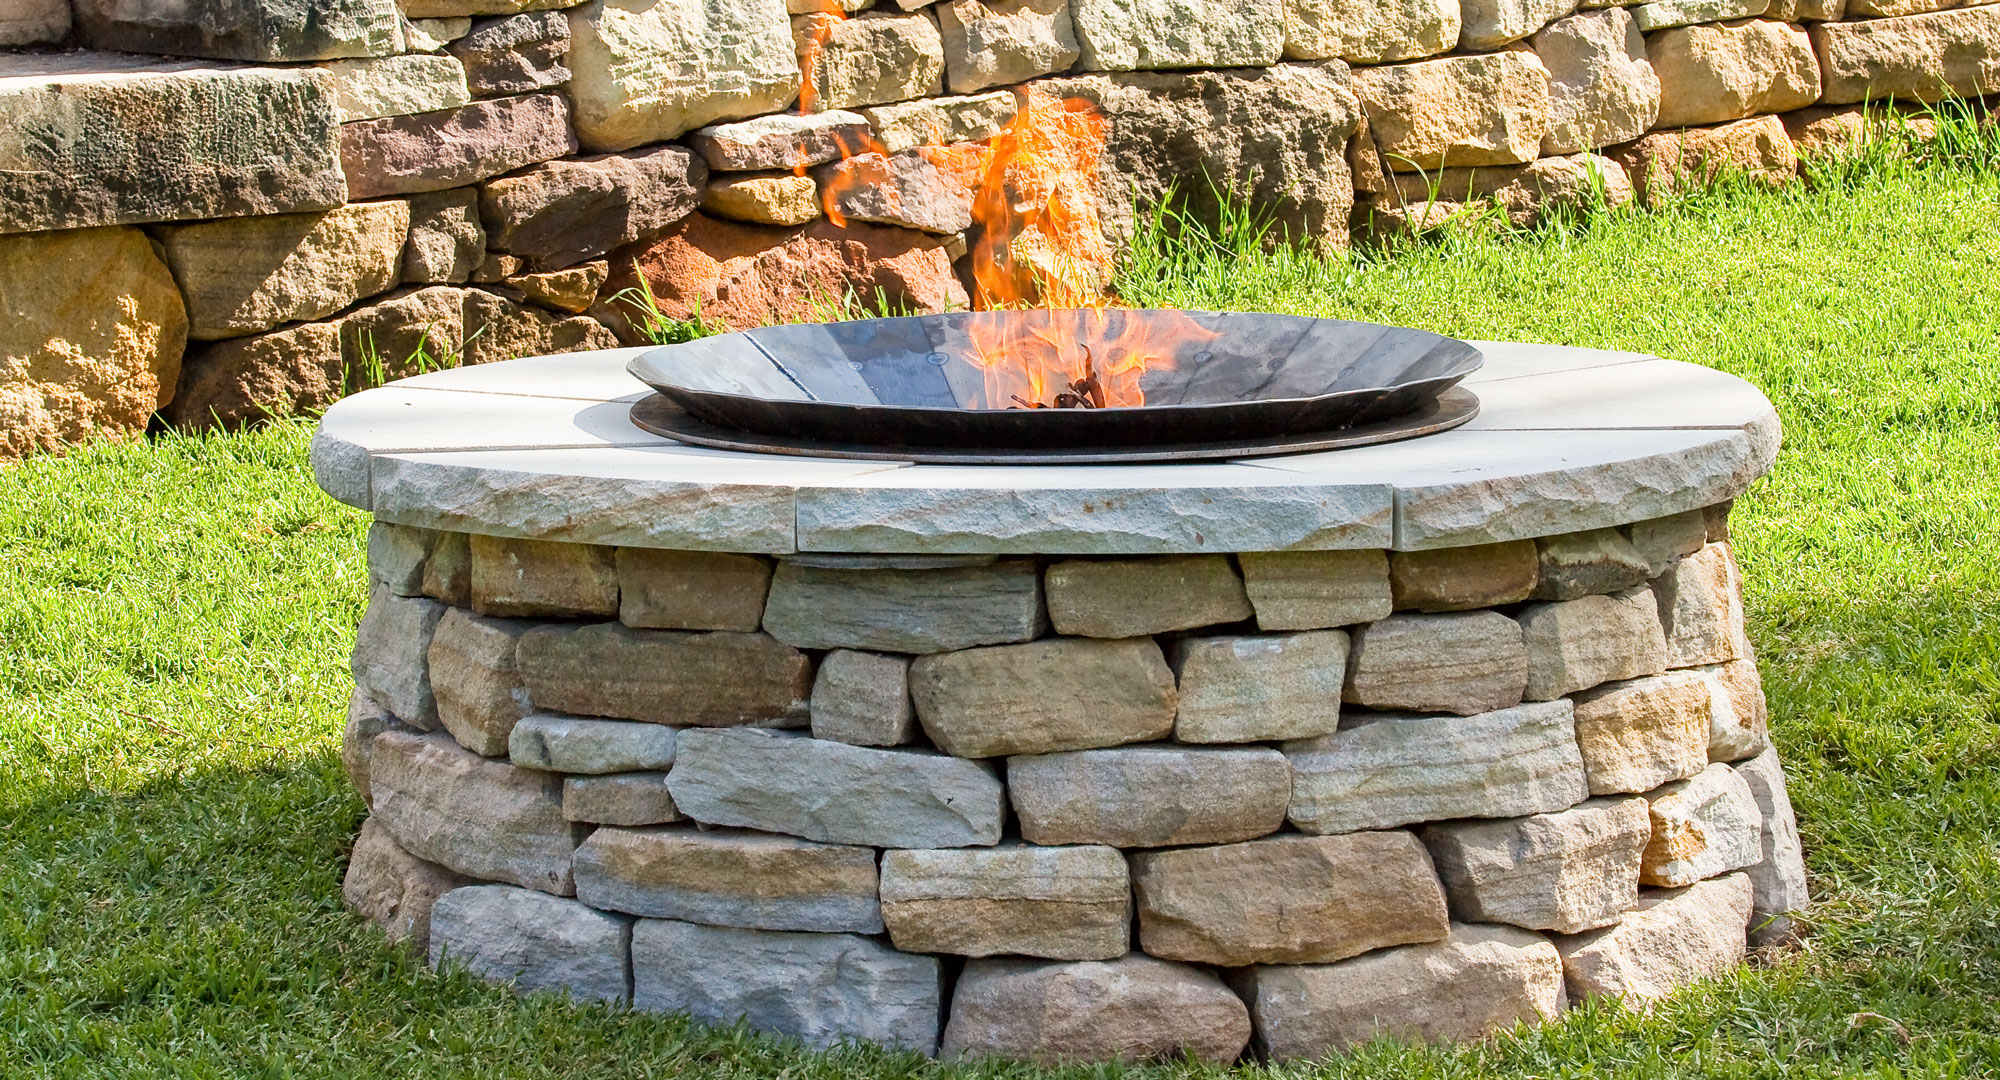 Make your own backyard fire pit - DIY, Gardening, Craft ...